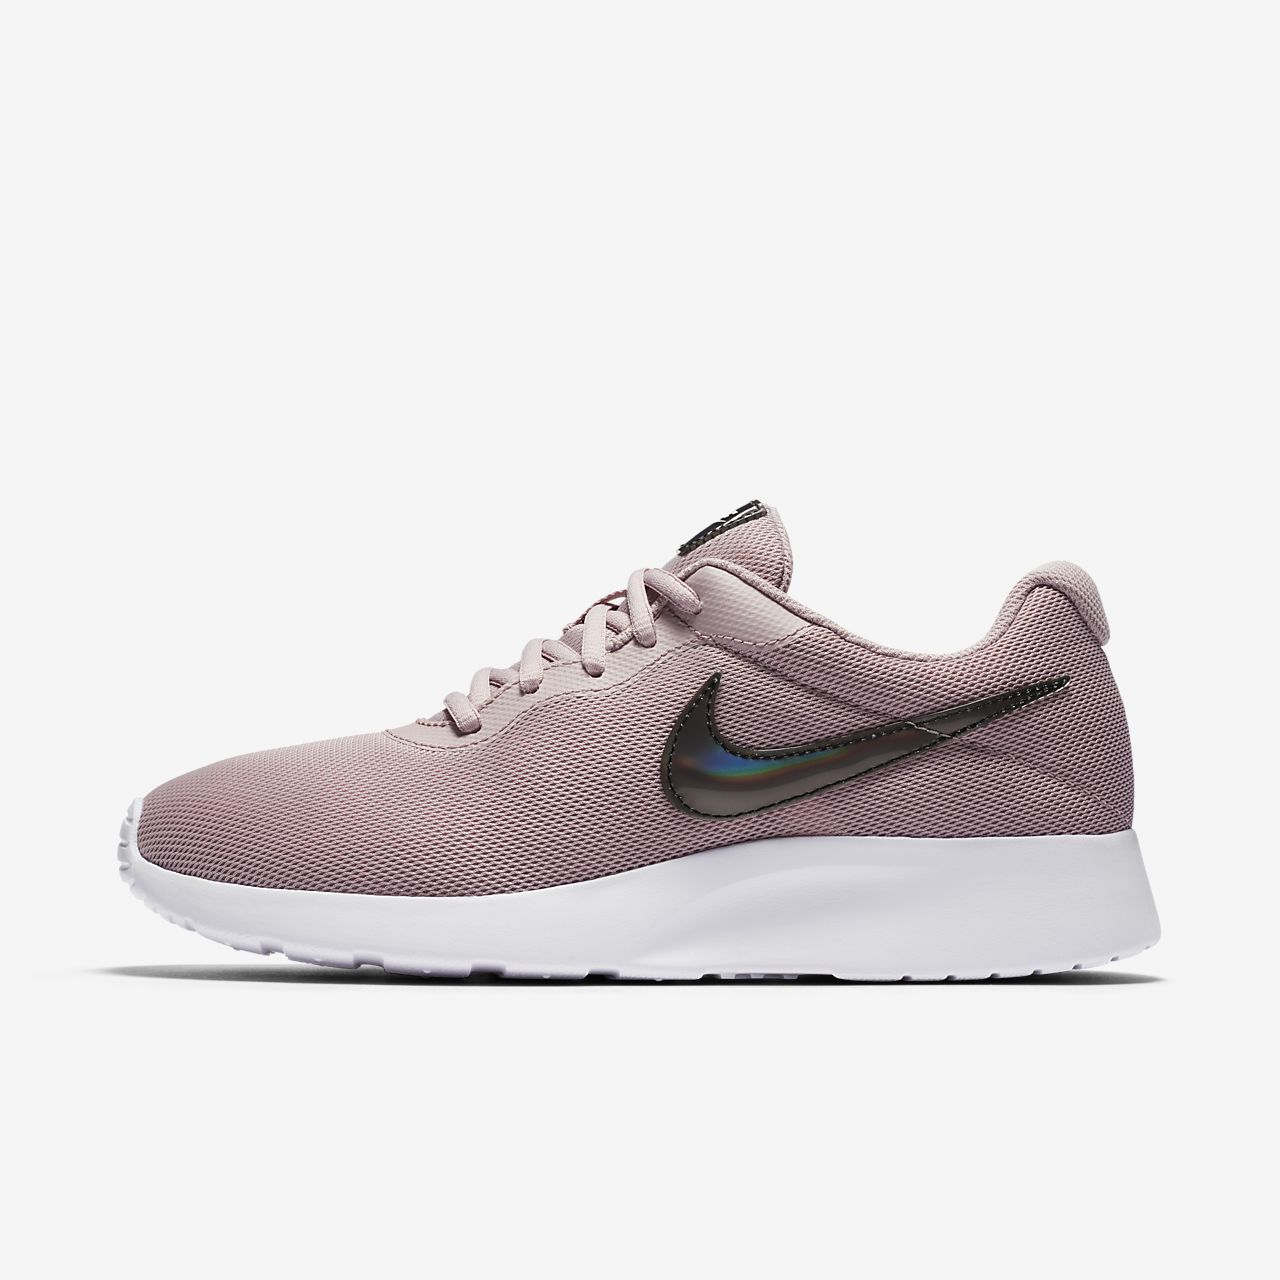 Low Resolution Nike Tanjun Women s Shoe Nike Tanjun Women s Shoe f75f74d20